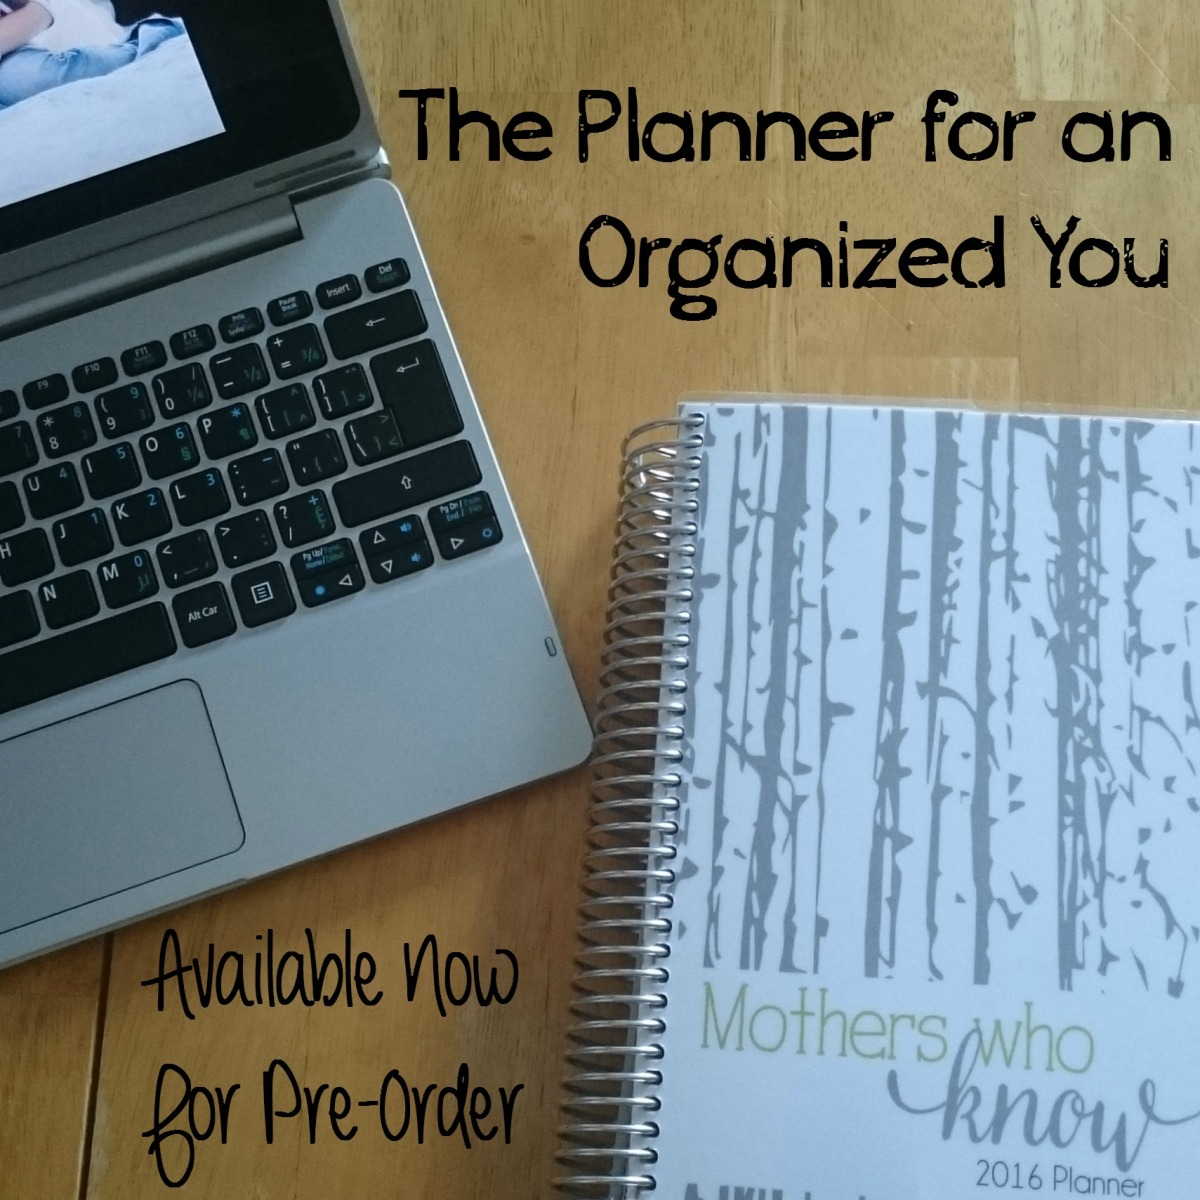 The Planner for an Organized You